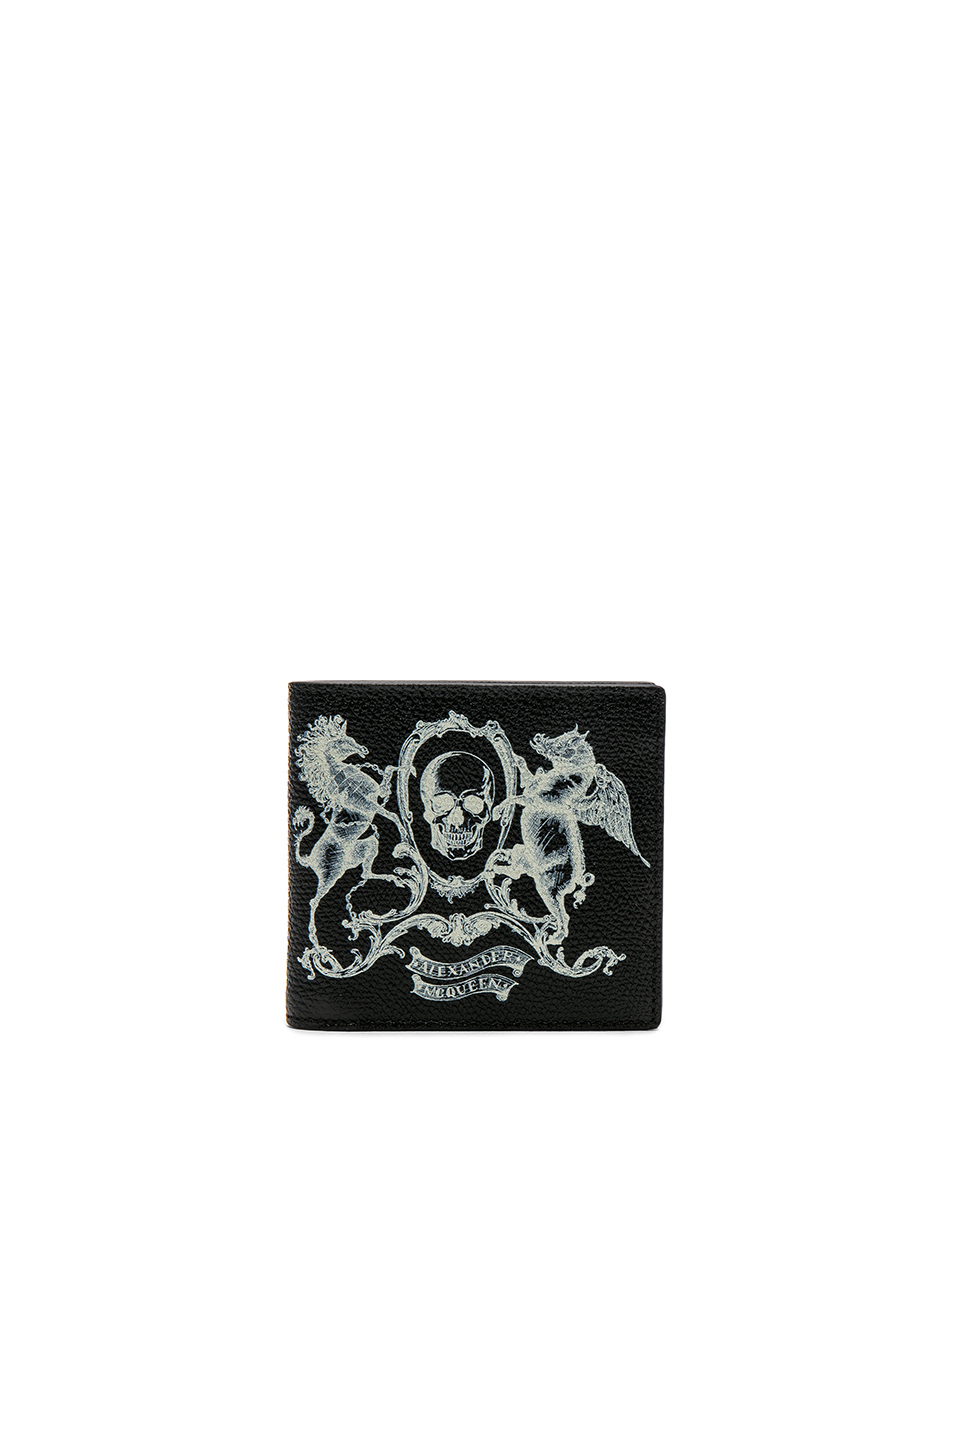 Alexander McQueen Coat of Arms Billfold Wallet in Black